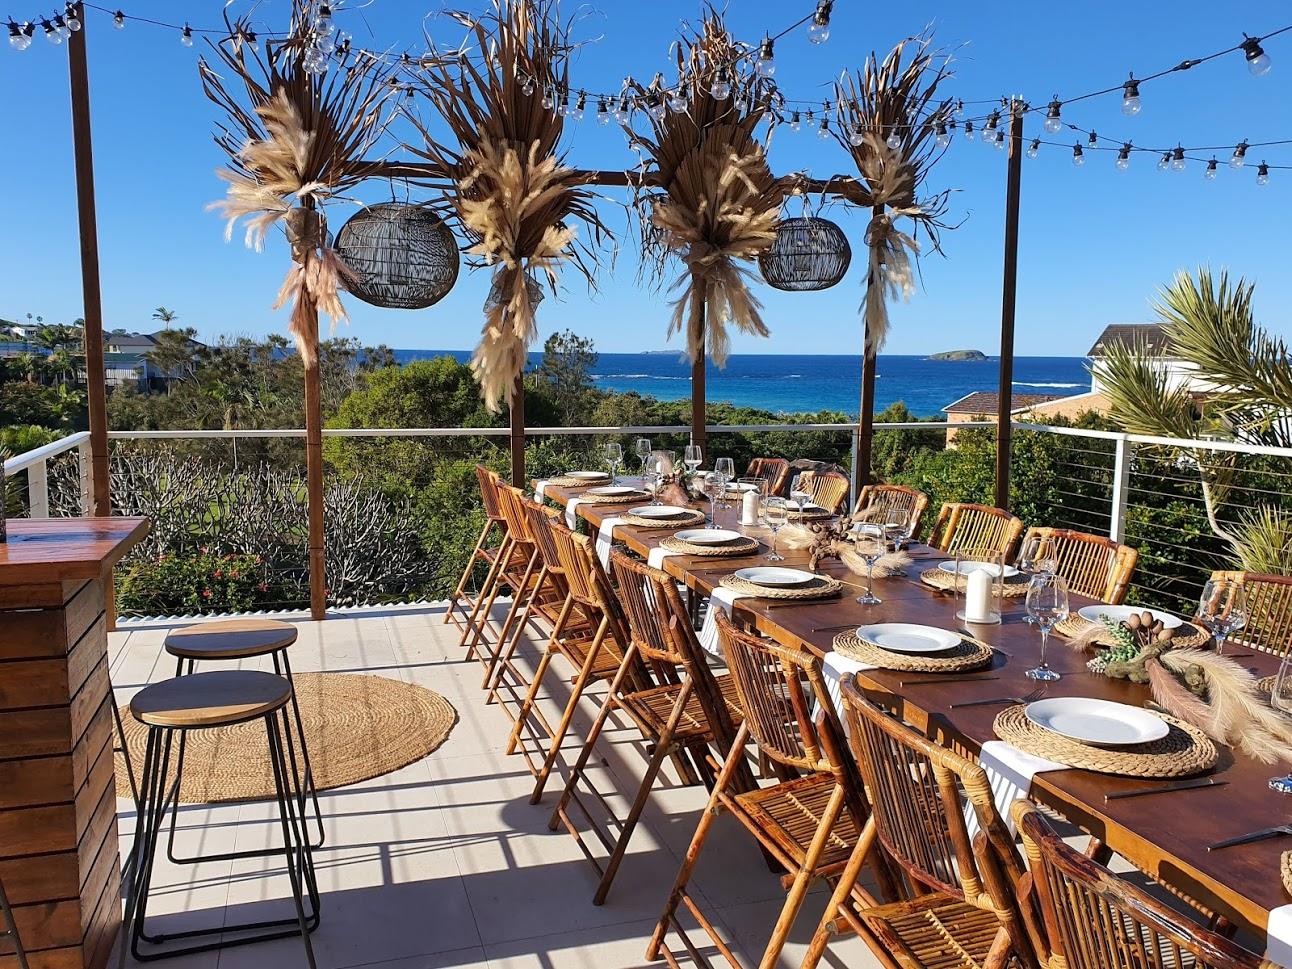 Festoon lighting dried botanical floral arrangements, bamboo chairs, timber topper tables